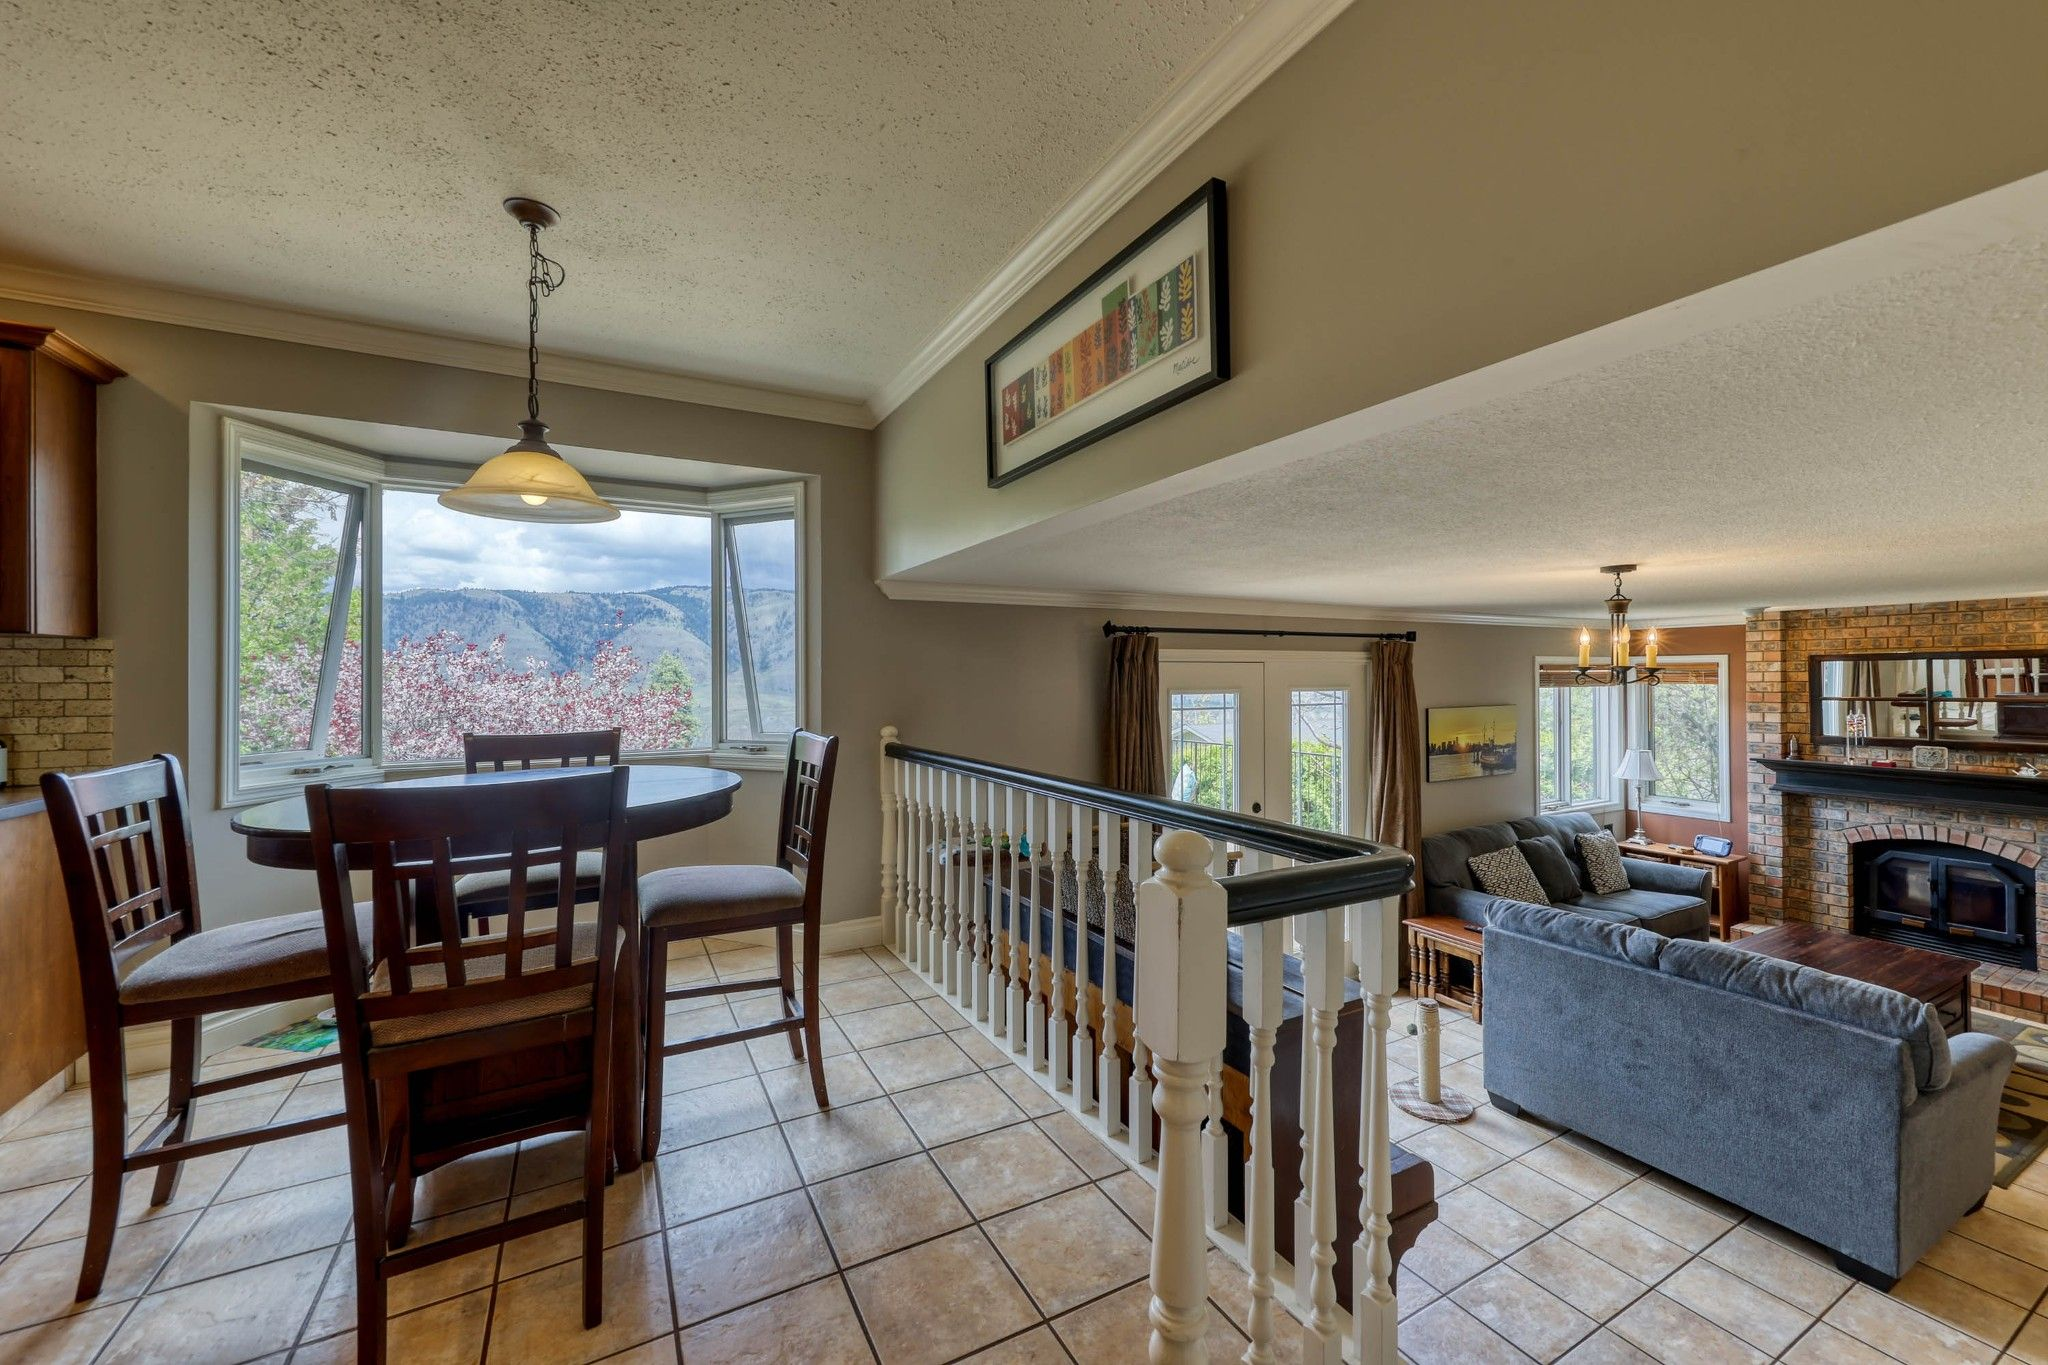 Photo 13: Photos: 2816 Capilano Drive in Kamloops: Juniper Heights House for sale : MLS®# 162002